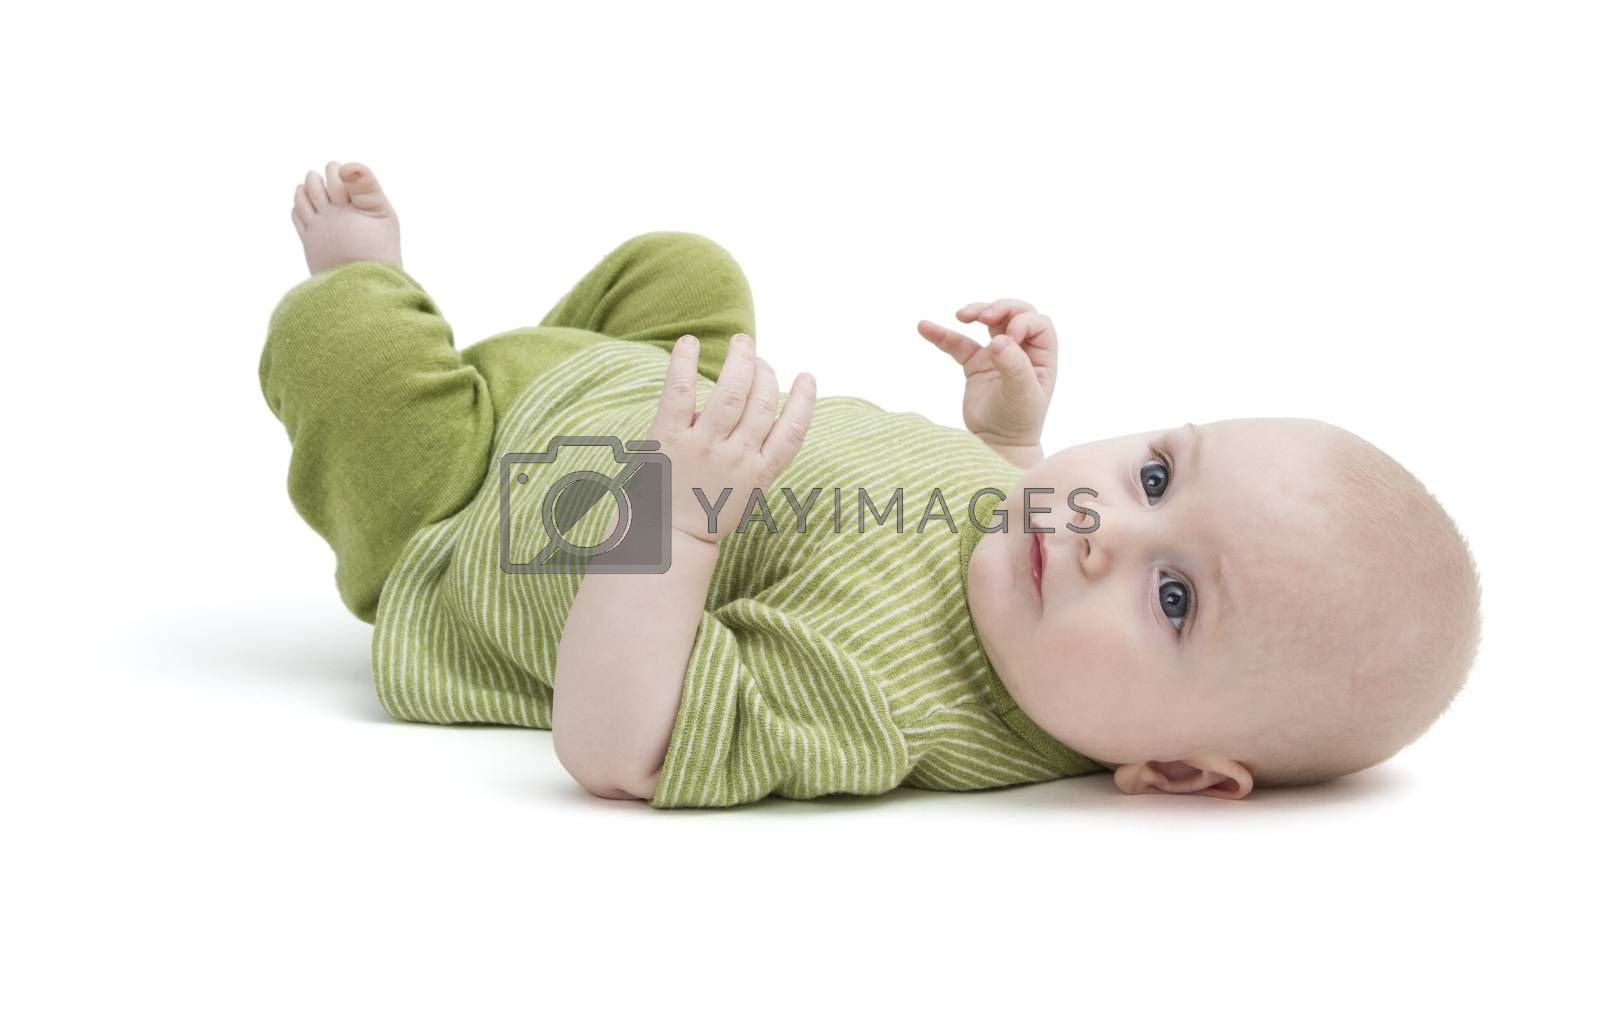 toddler in green clothing laying on back in white background